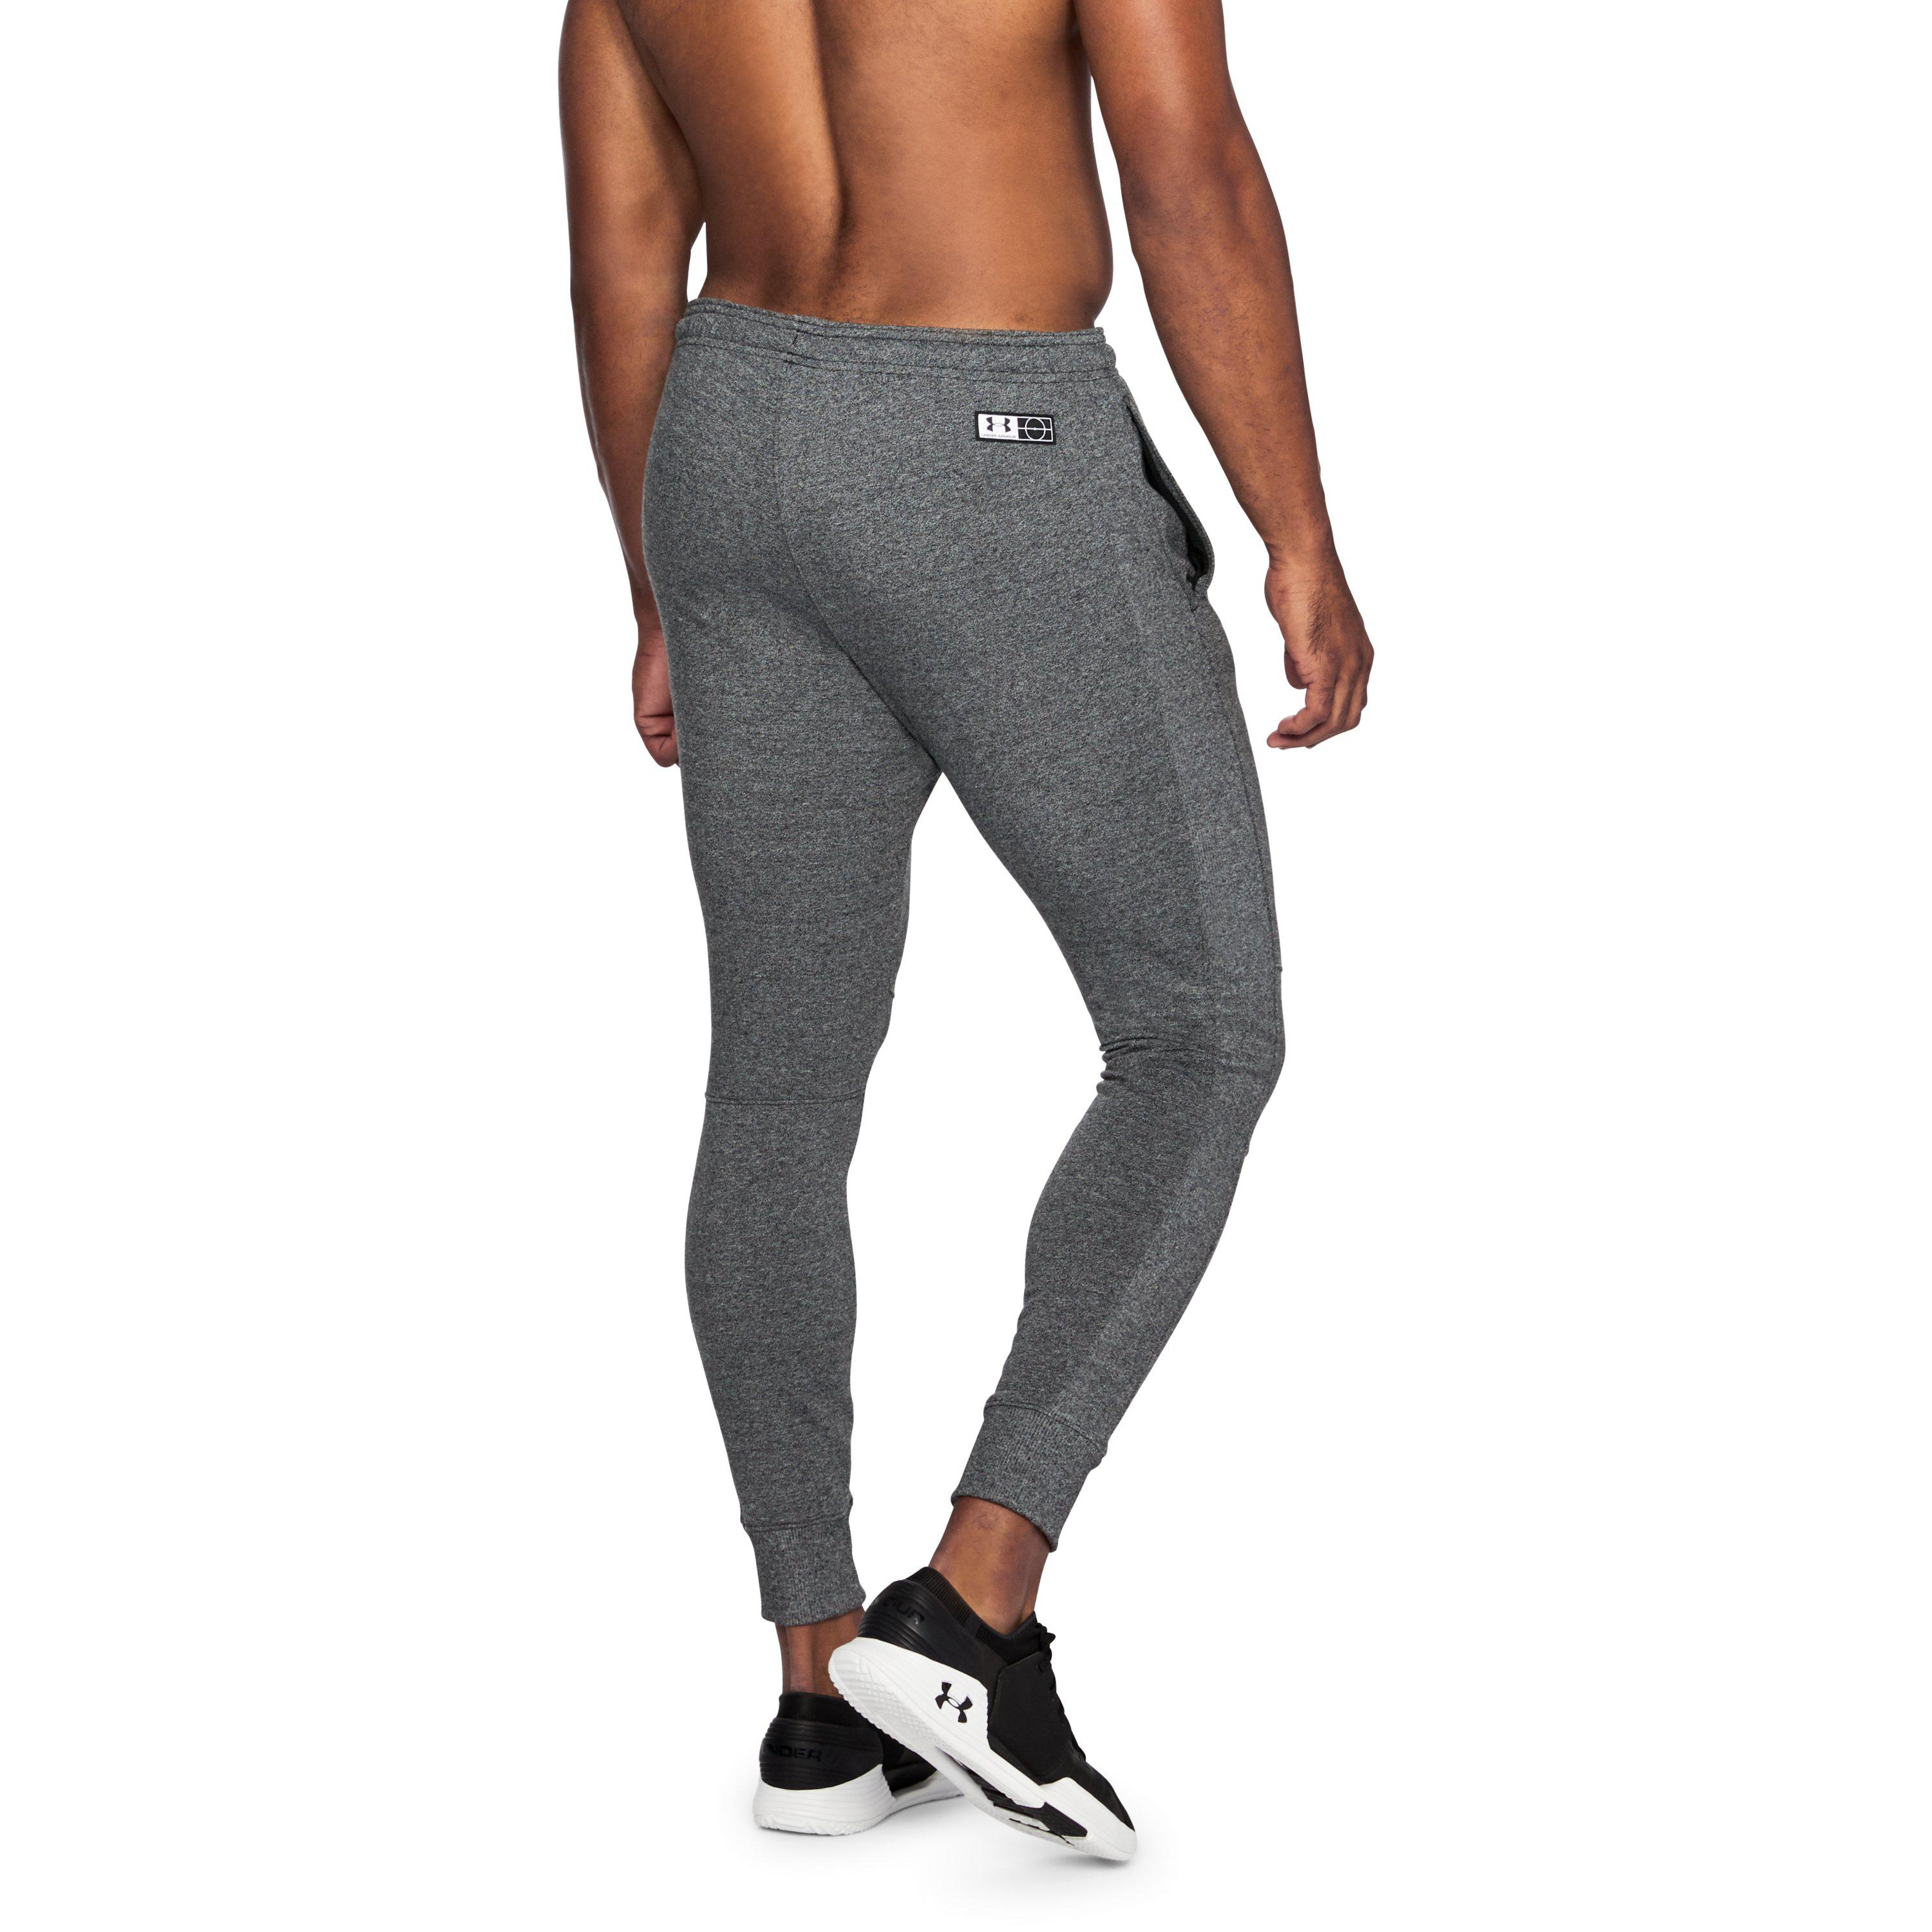 362ff7aea Under Armour Men's Ua Accelerate Sweatpants for Men - Lyst